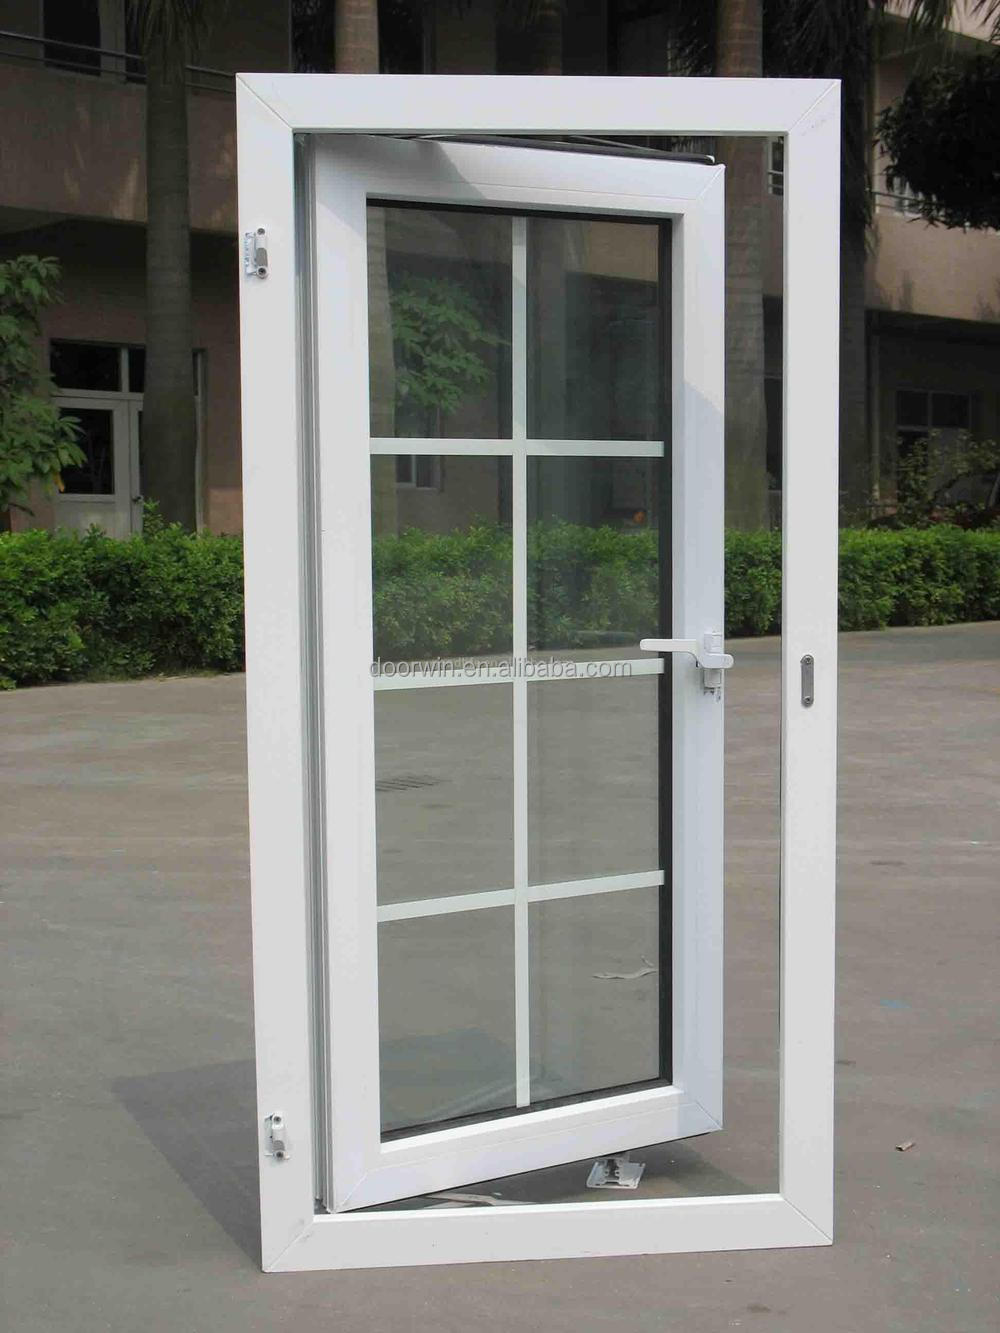 Upvc Window Inserts Grills Design Cost Buy Window Grills